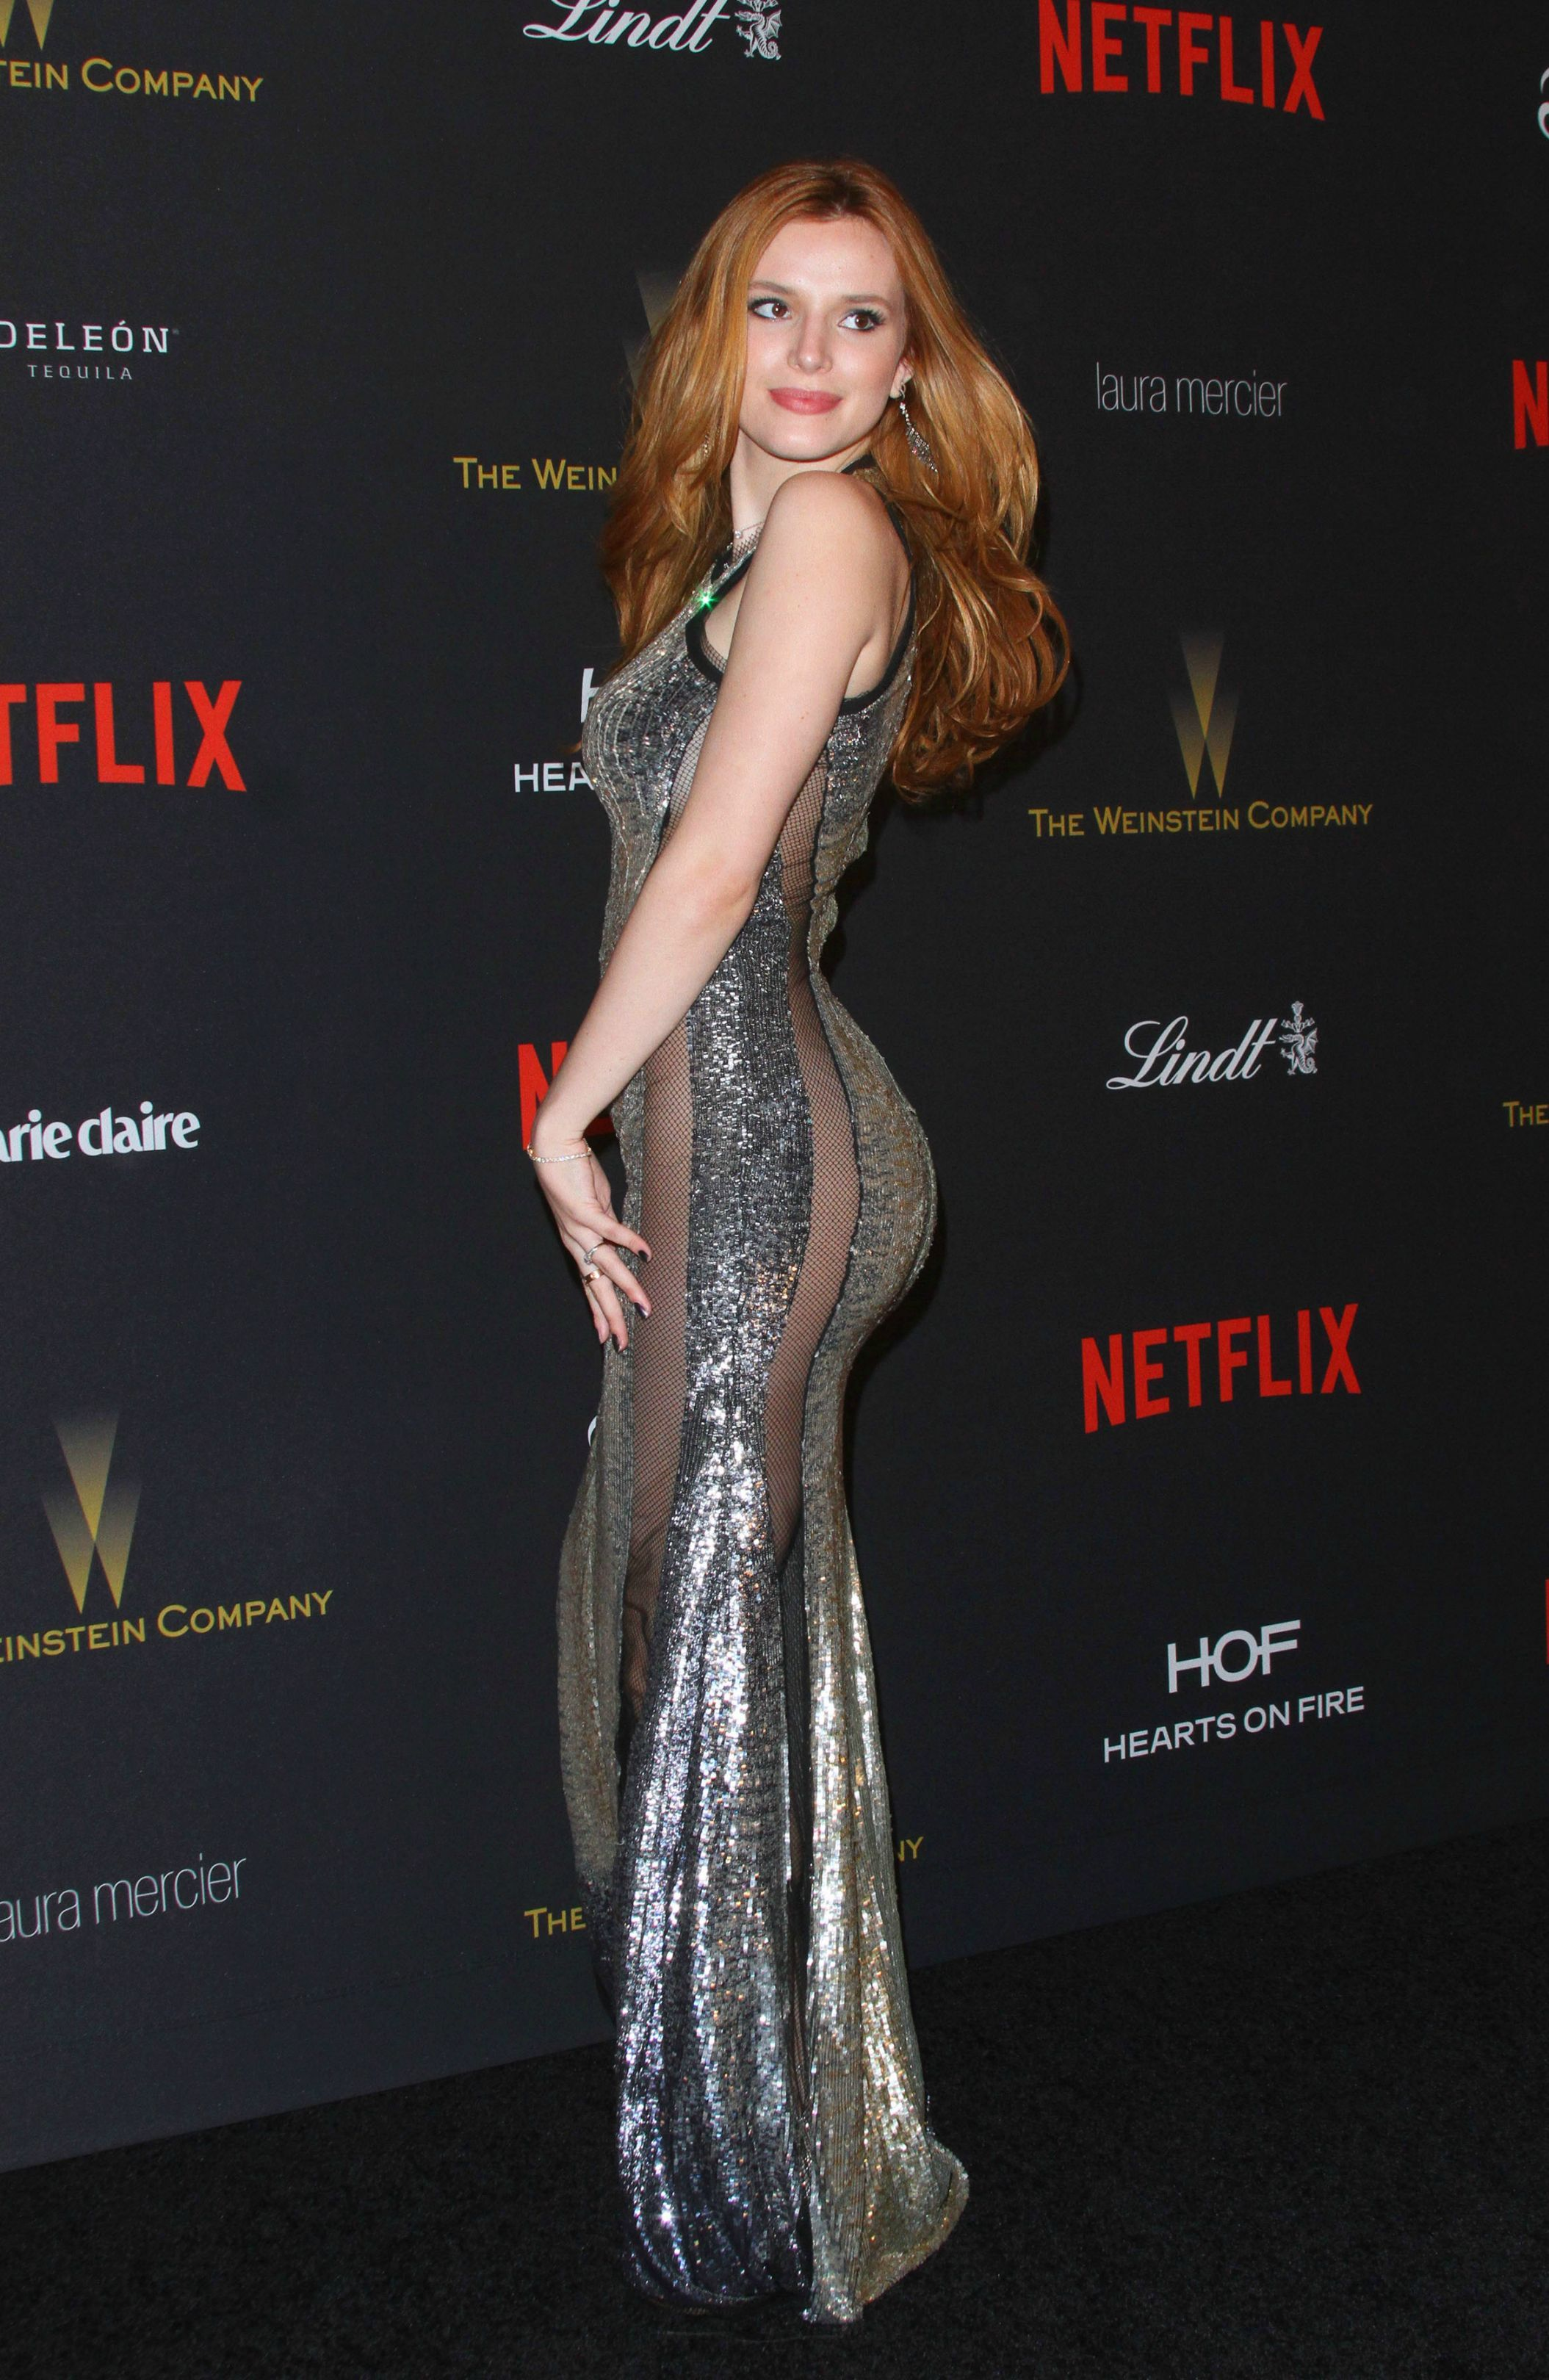 It up bella thorne sports a grown up look in elegant peplum dress - Bella Thorne Actress In A Beautiful Dress Without Underwear